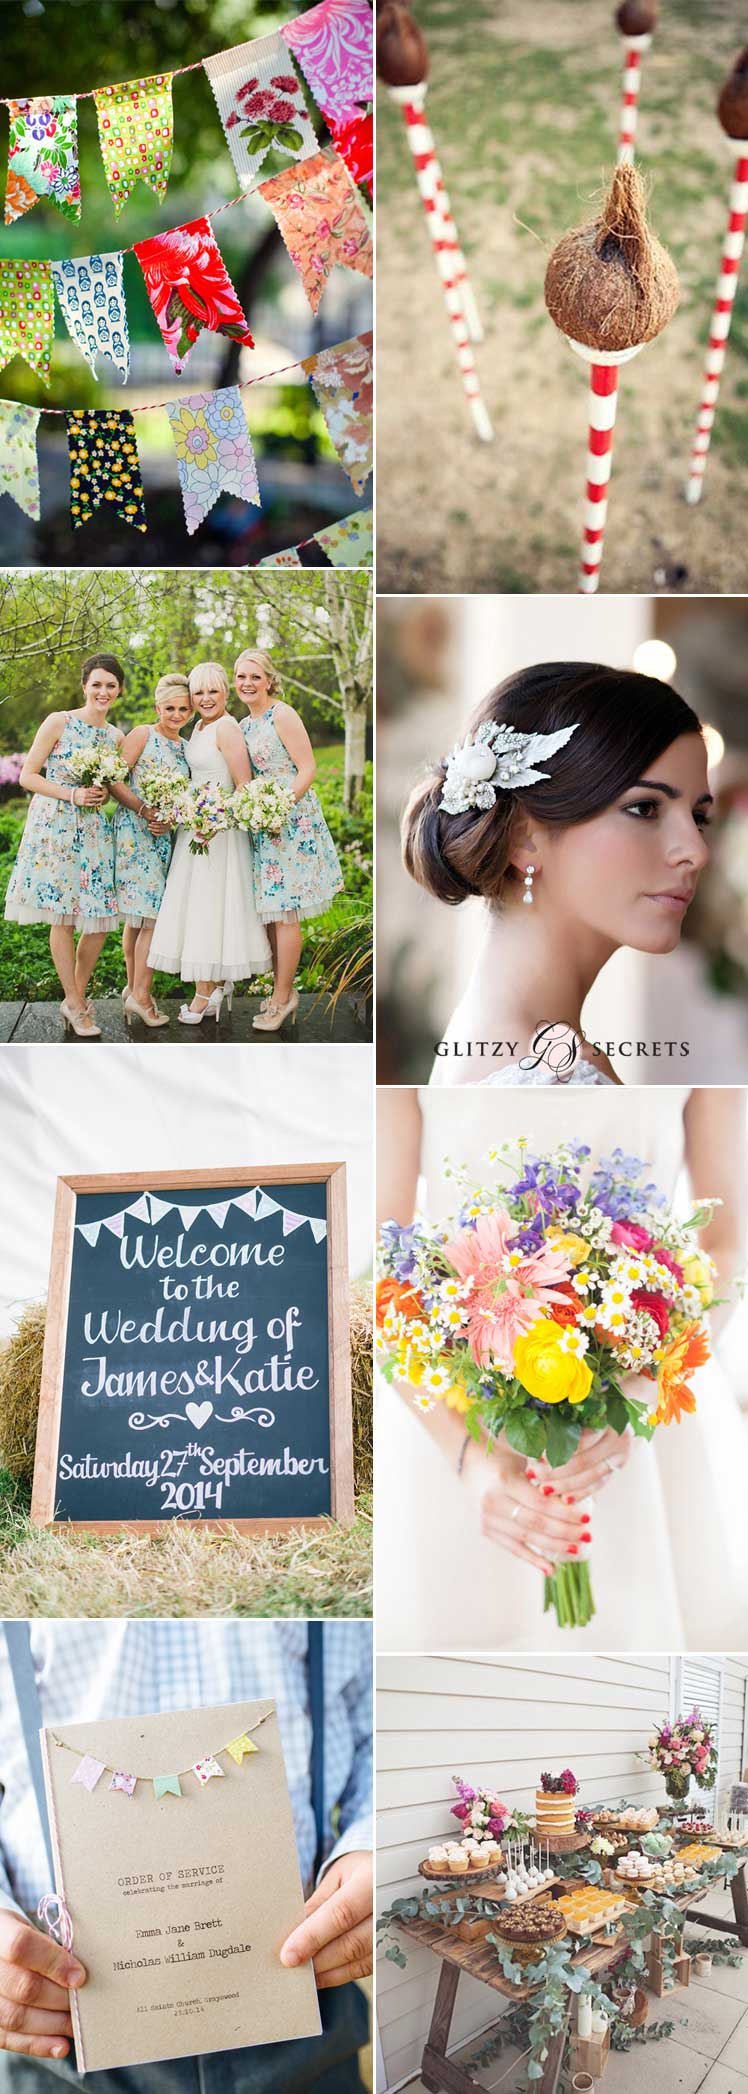 fun village fete wedding inspiration